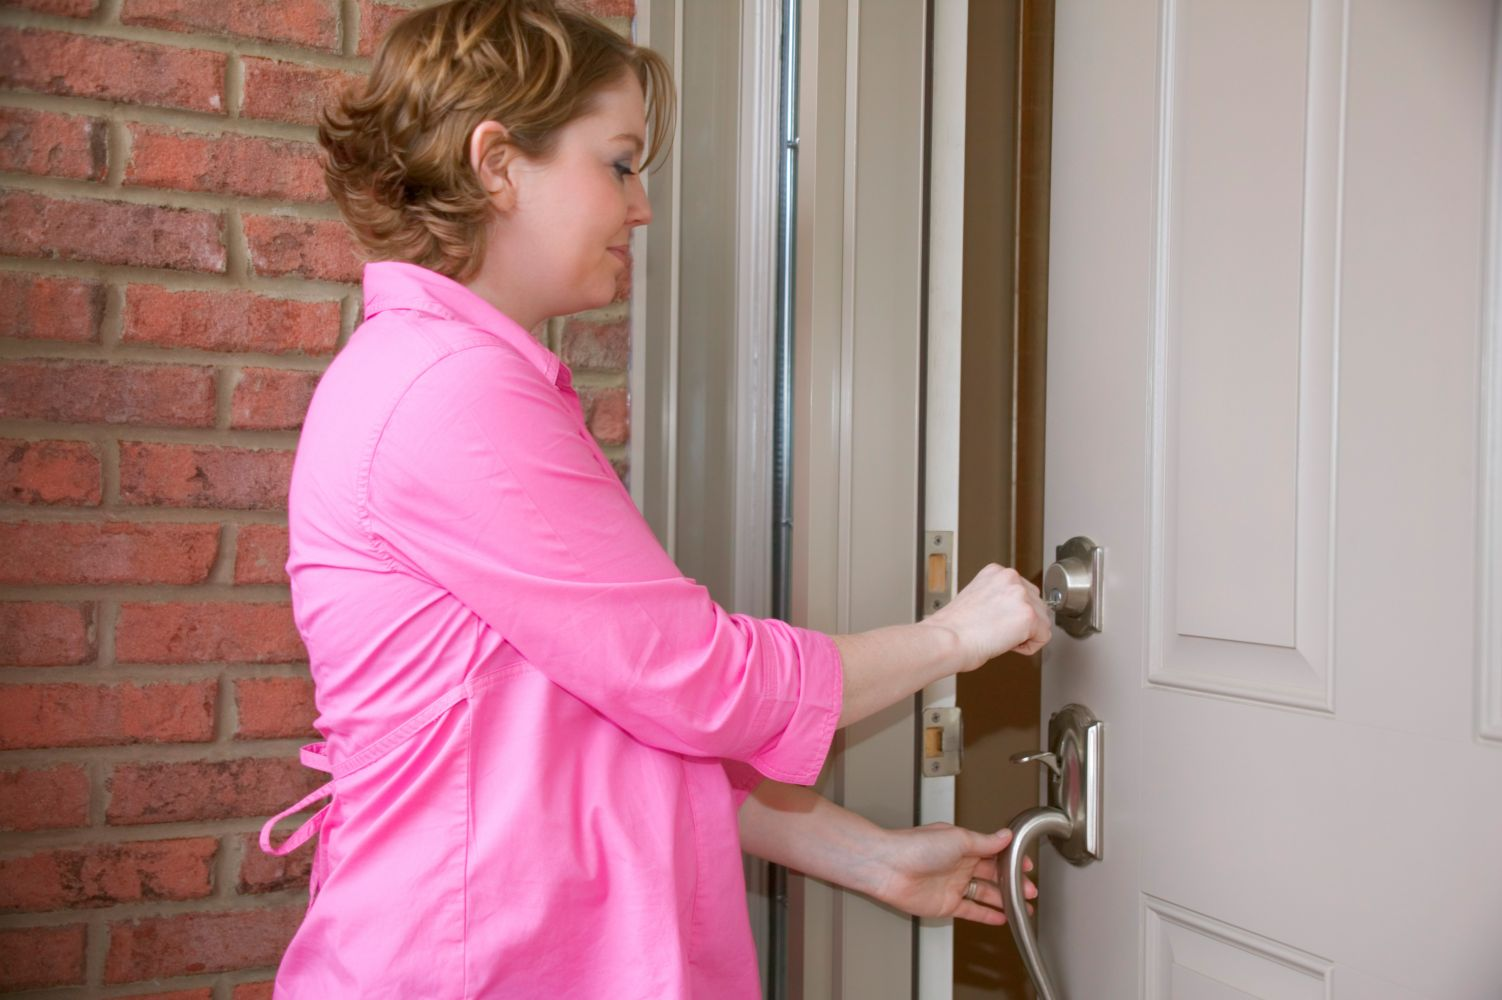 Woman opening lock provided by locksmithing experts in Anchorage, AK